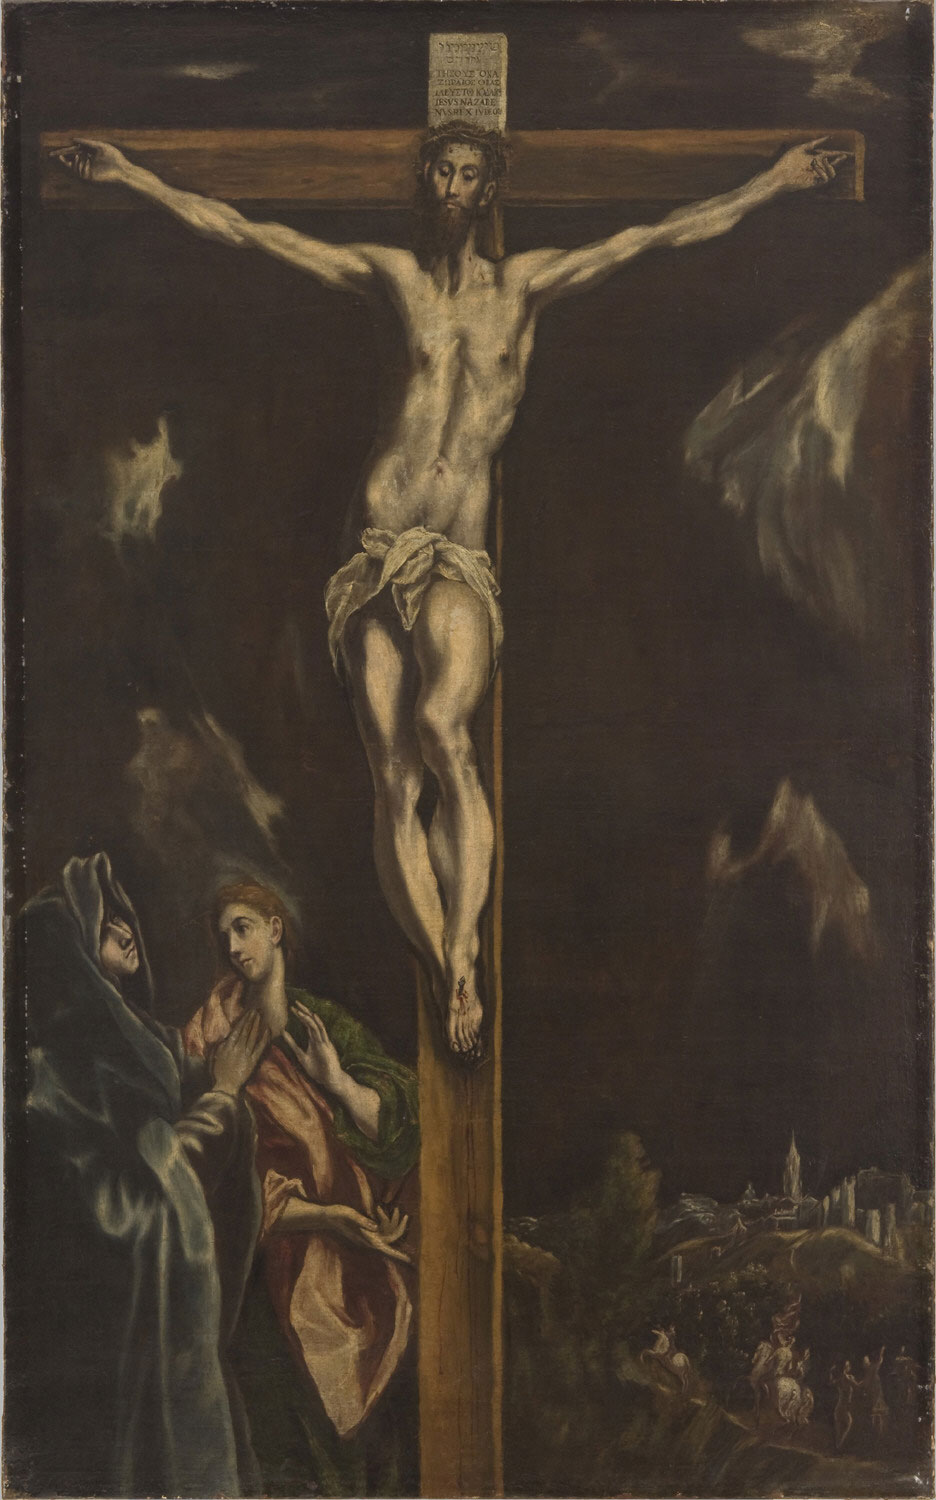 Crucifixion with the Virgin Mary and Saint John the Evangelist